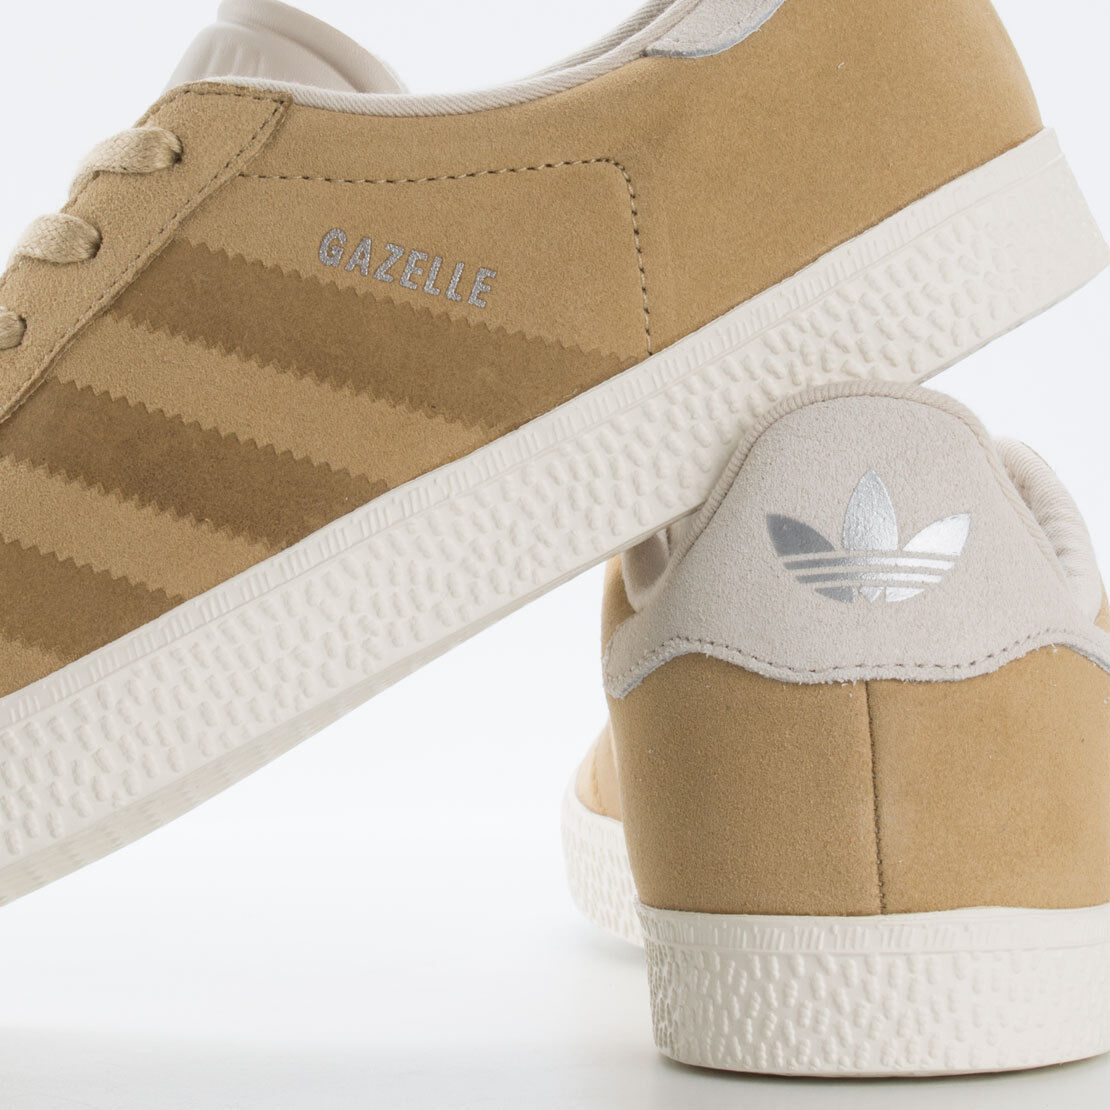 Adidas Adidas Adidas Originals Gazelle J Beige Khaki Tan Cream Brown Suede Kids sz 5.5 Women 7 64e167